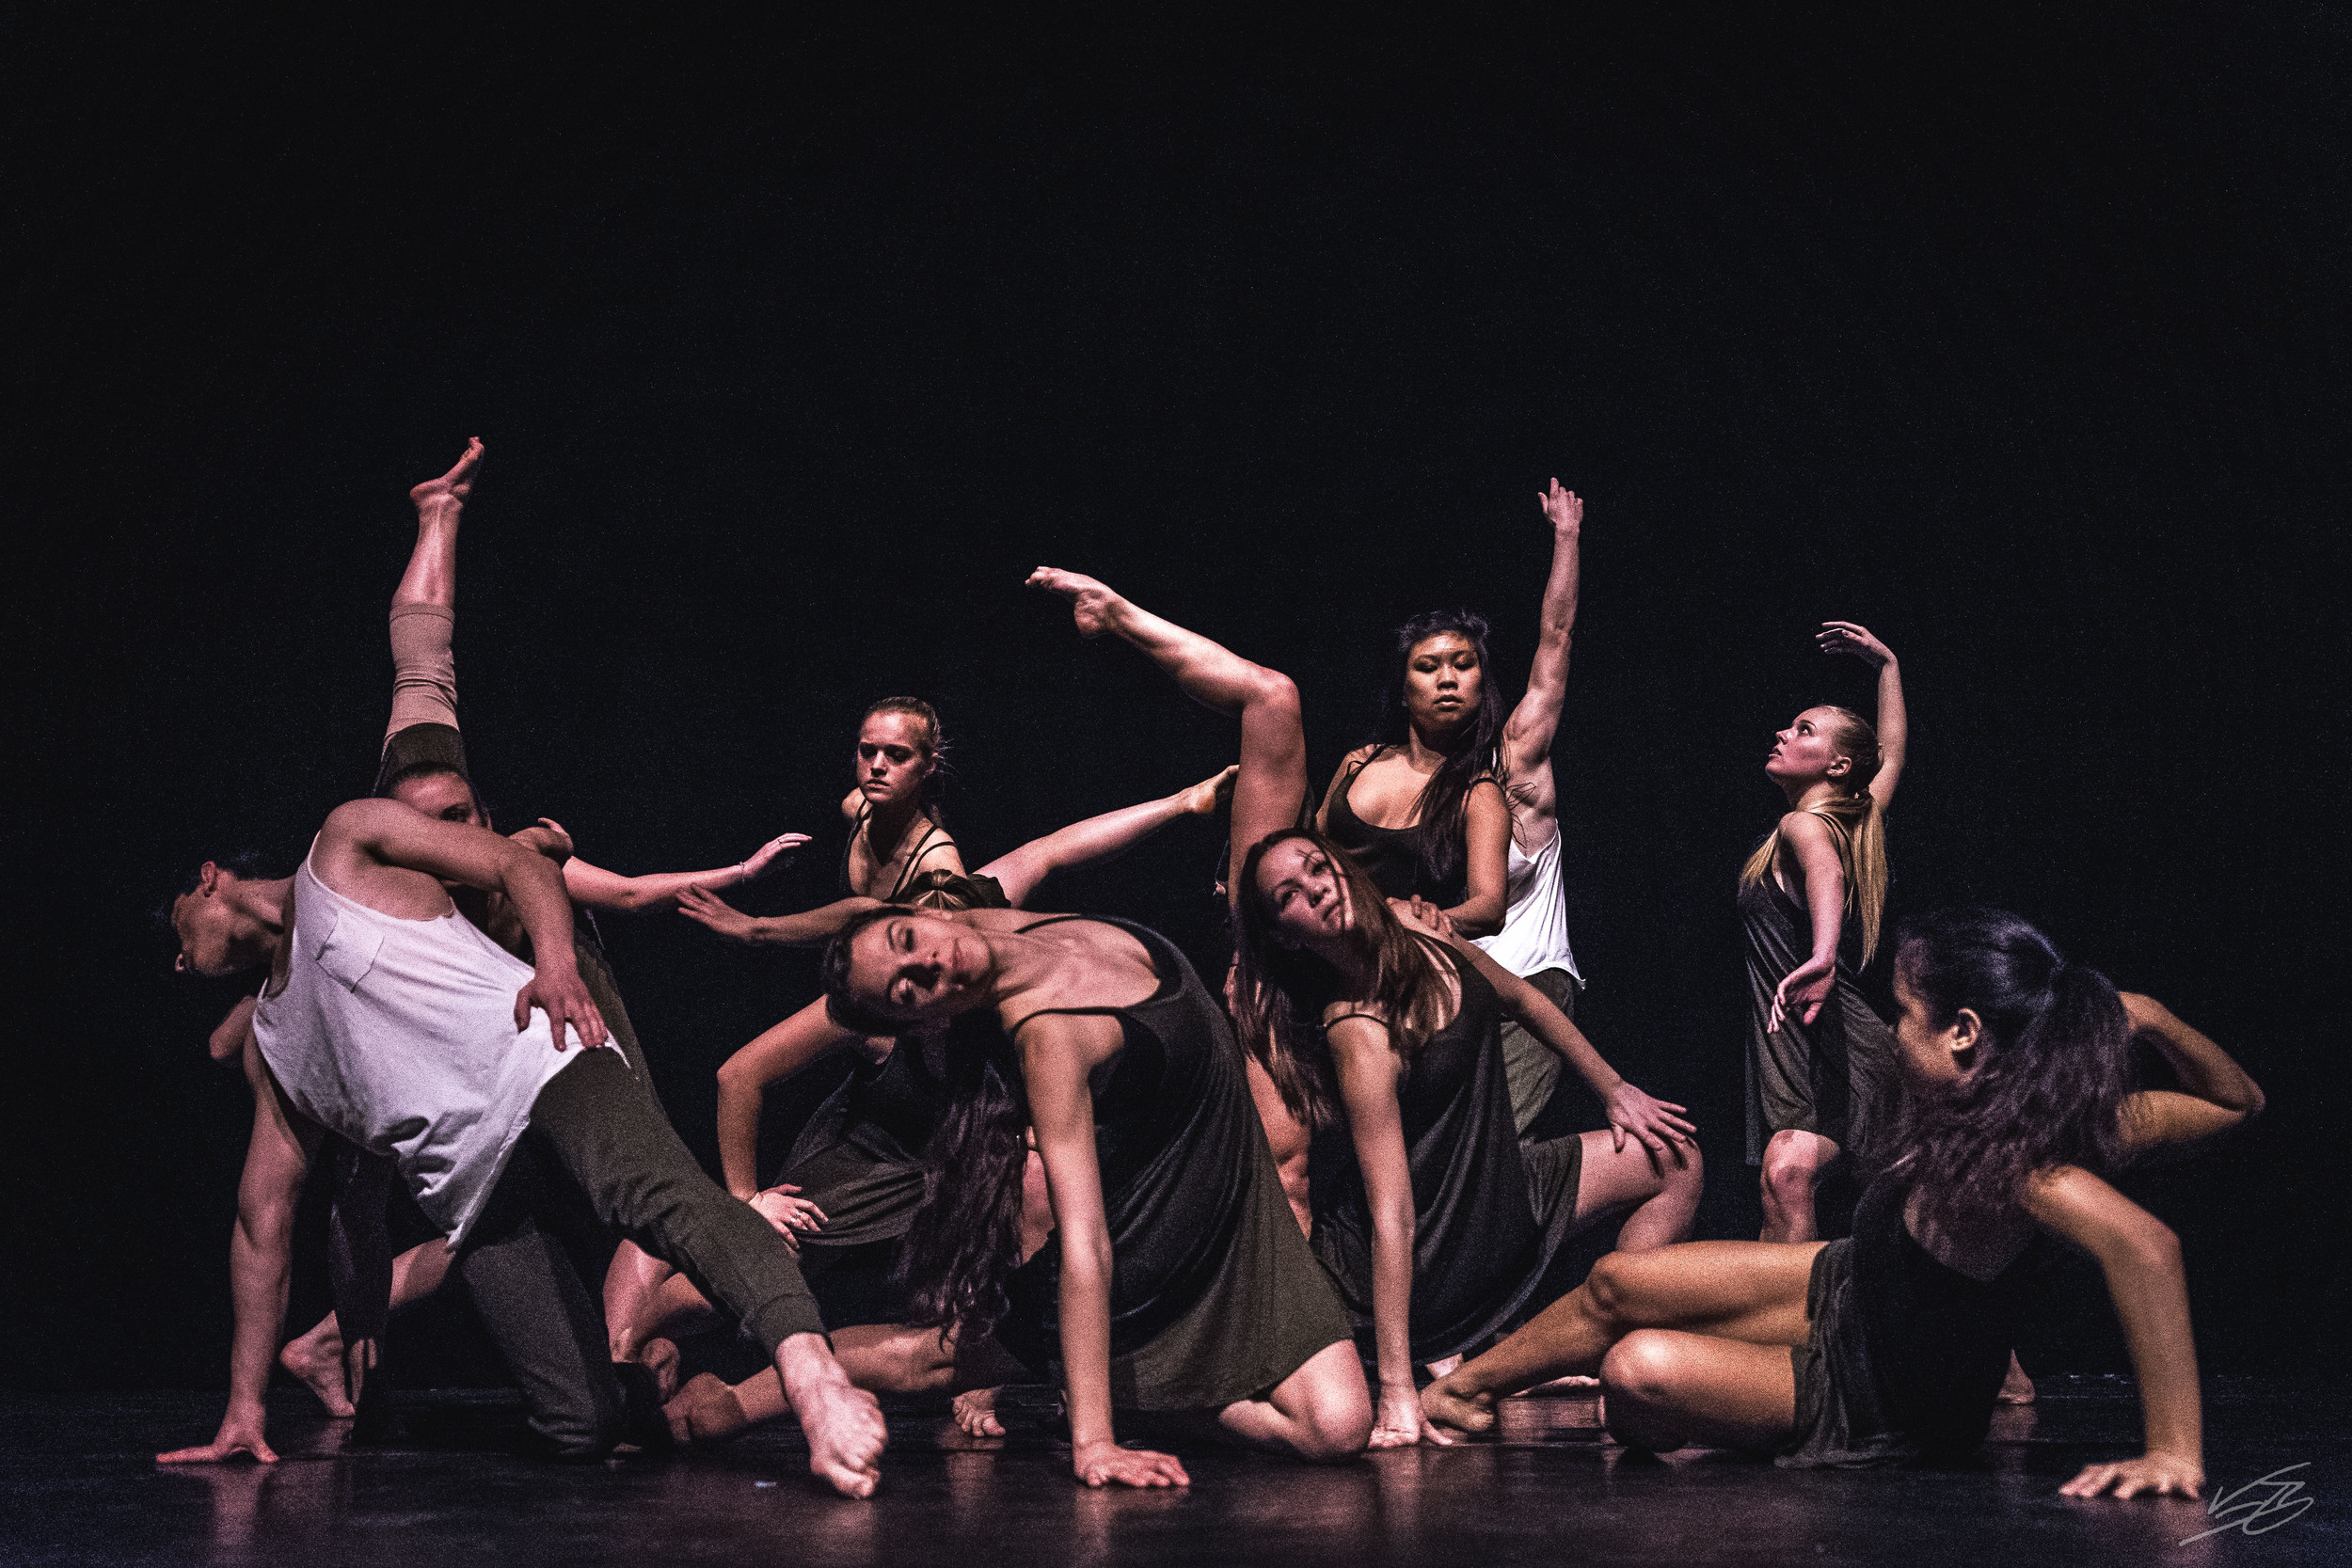 diSiac Dance Company: Untitled